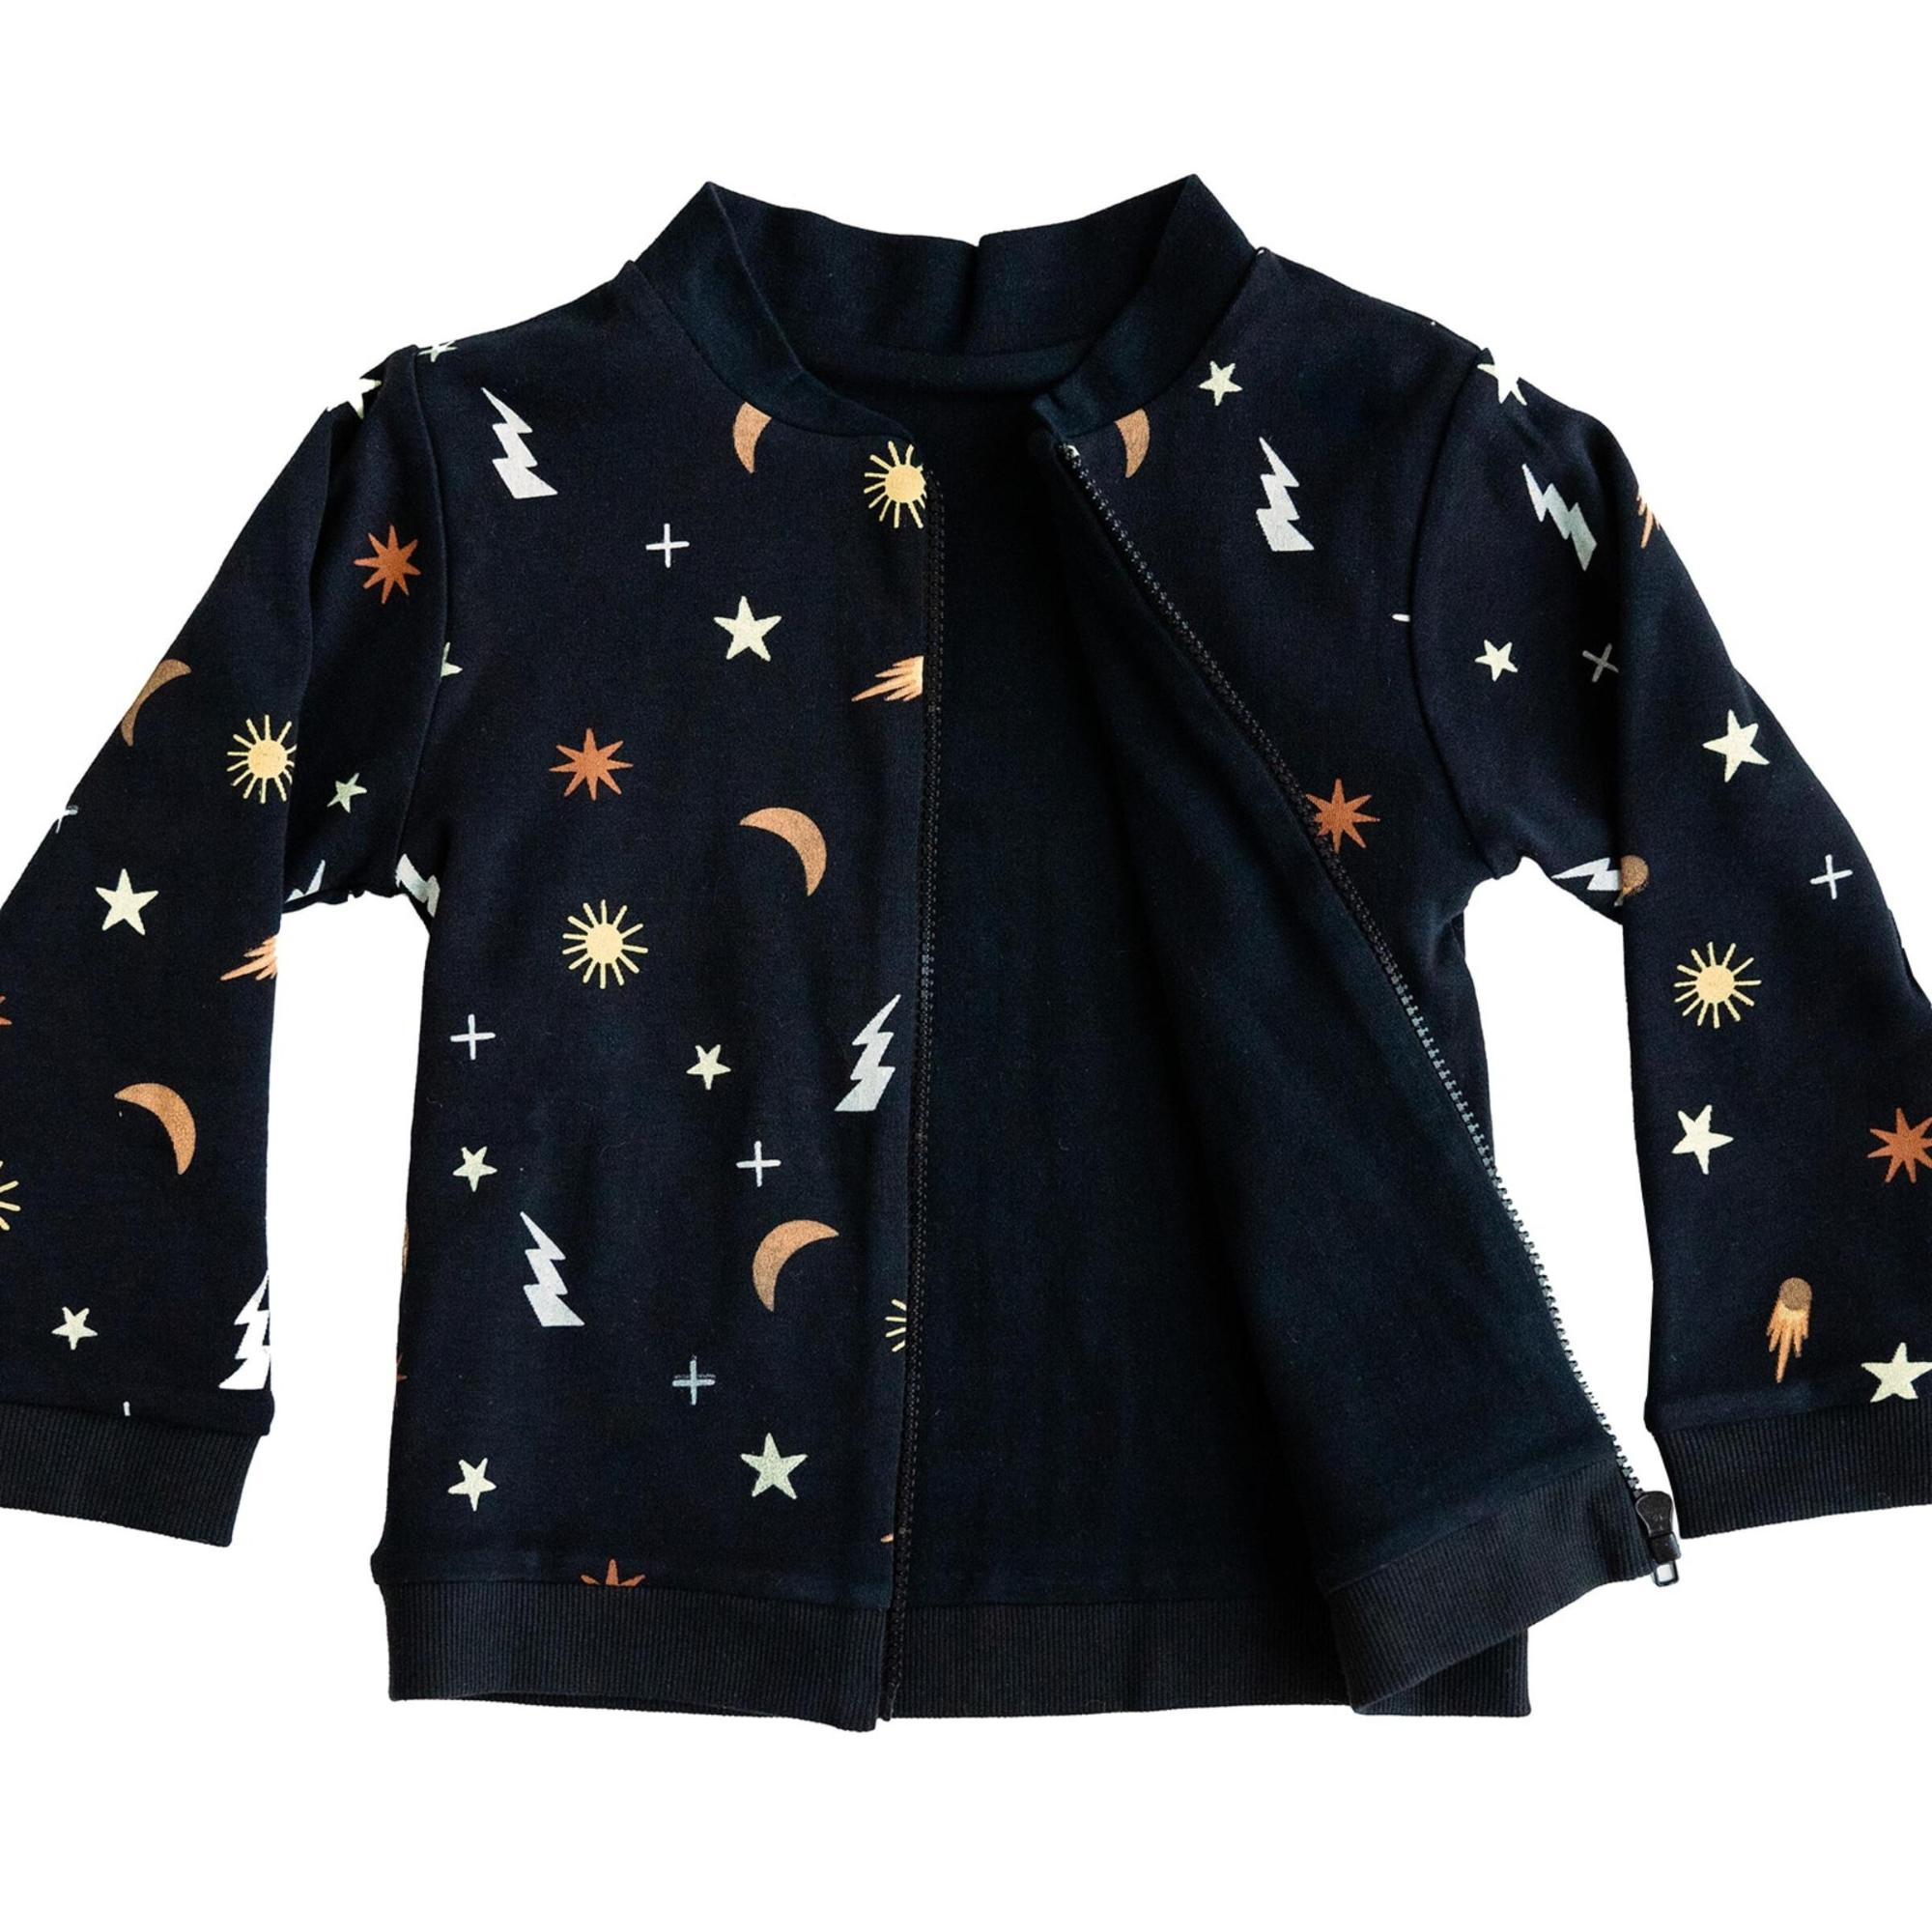 Bizz x Siss Outerspace Reversible Jacket in Black